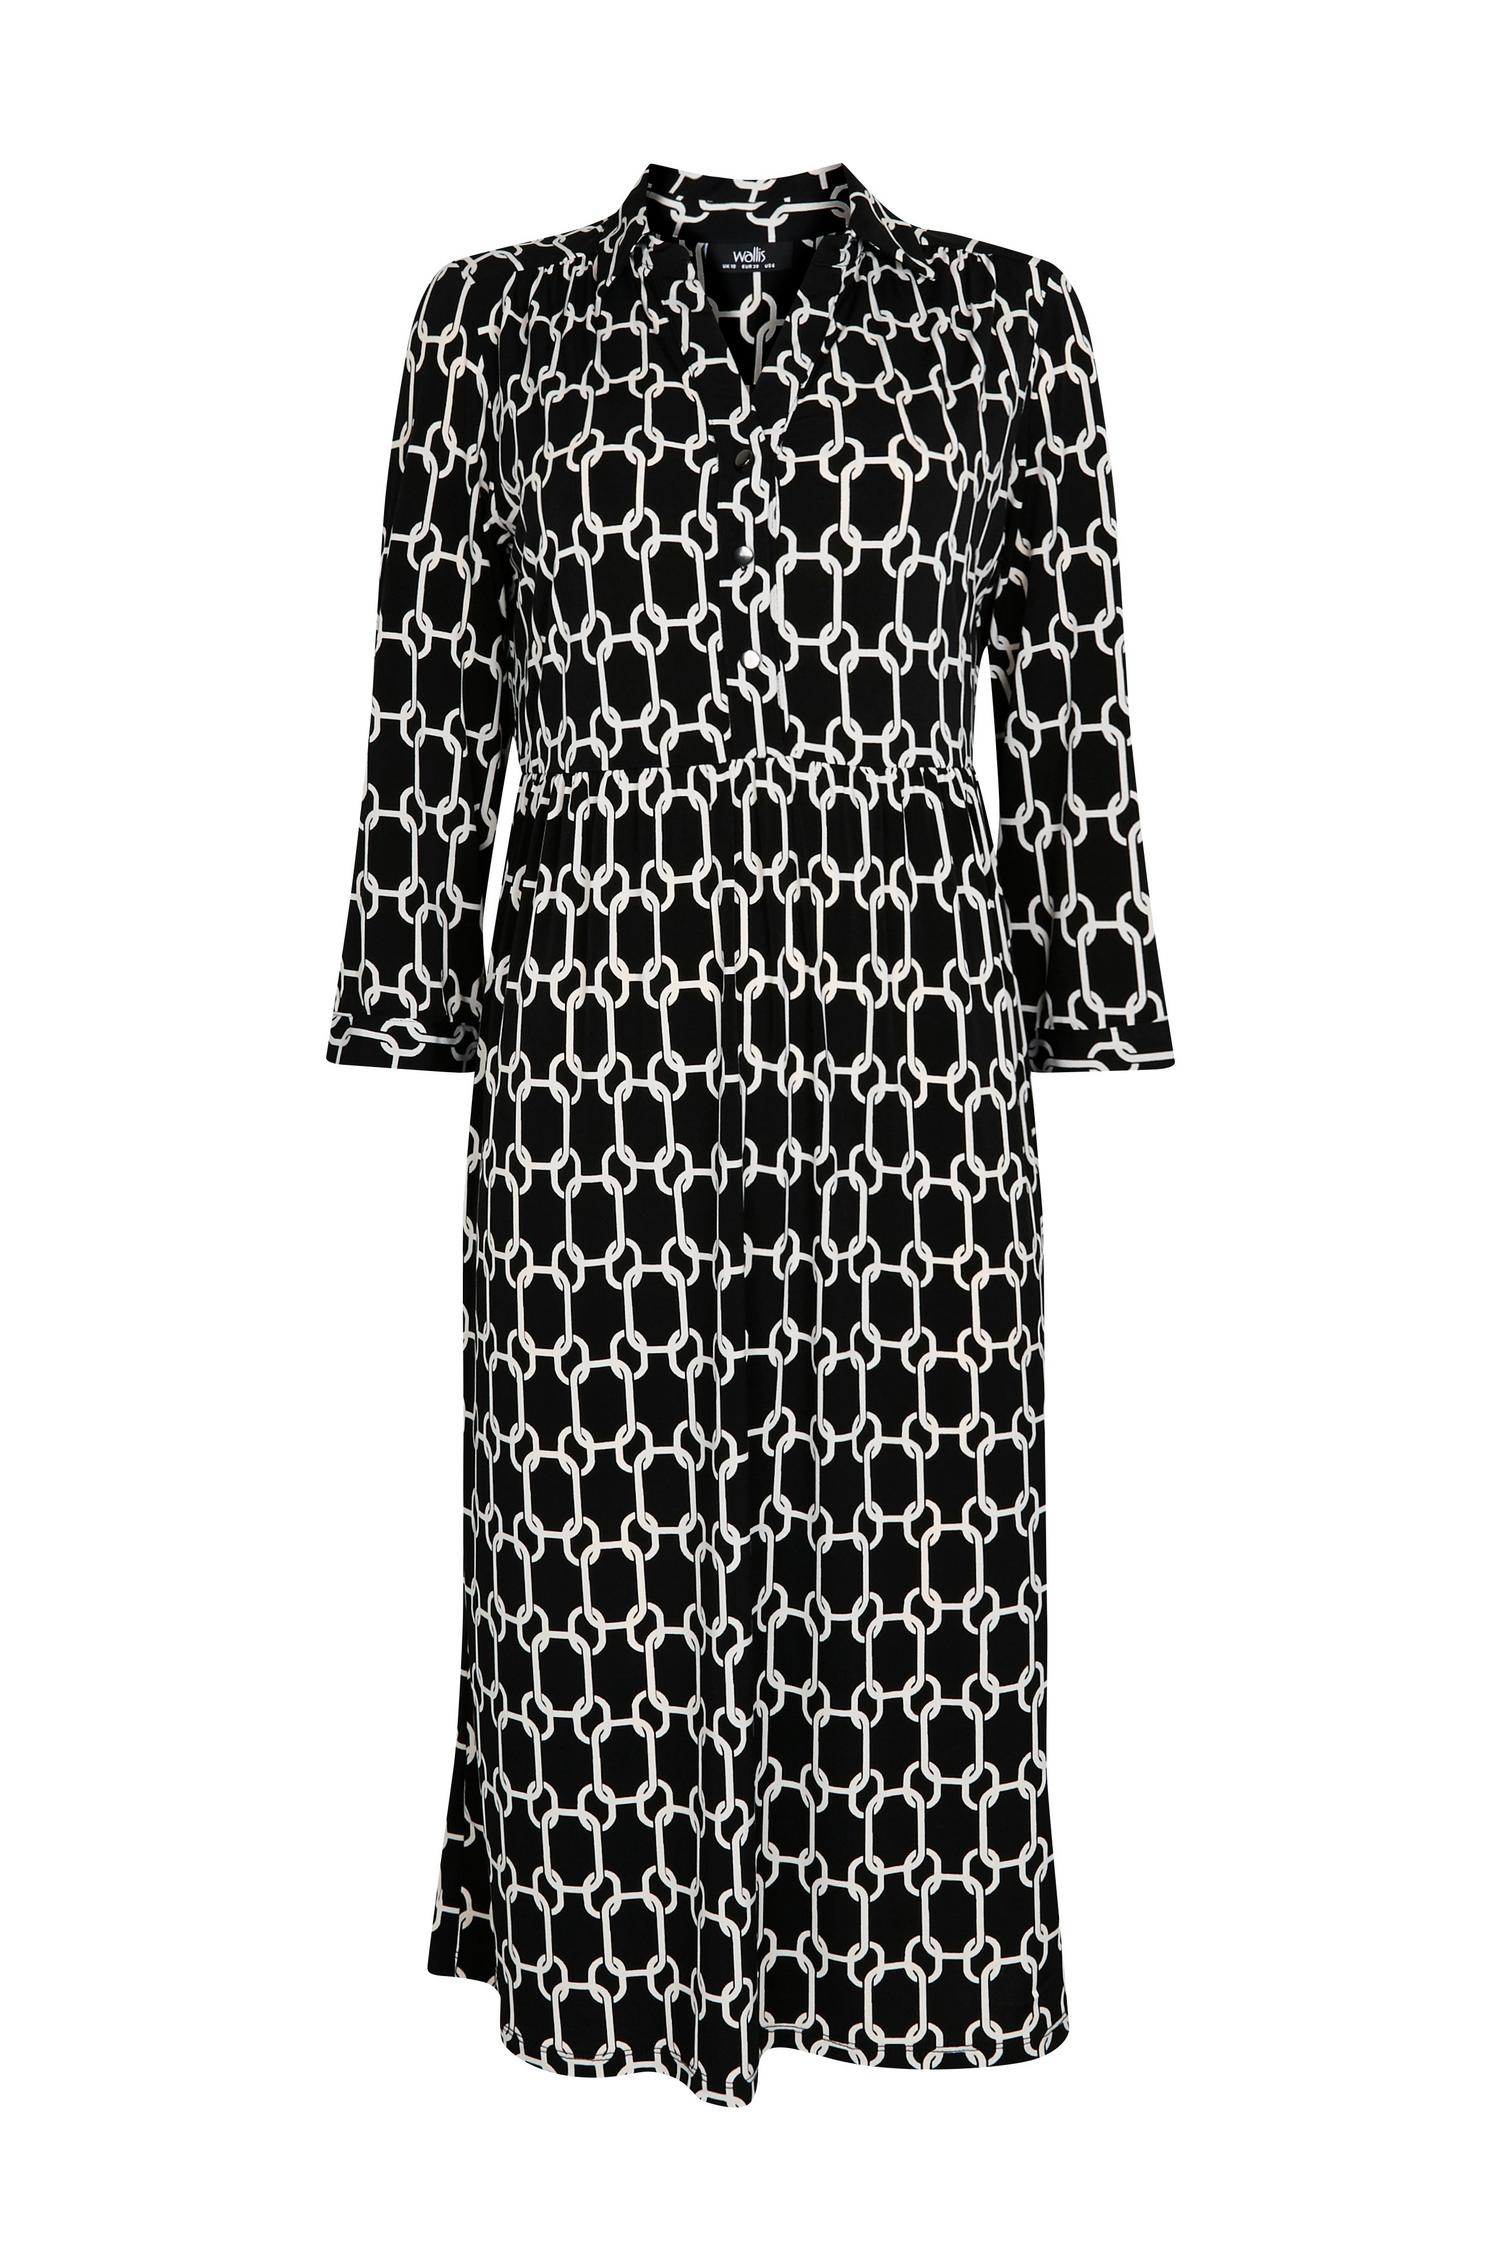 585 Monochrome Chain Print Shirt Dress image number 4